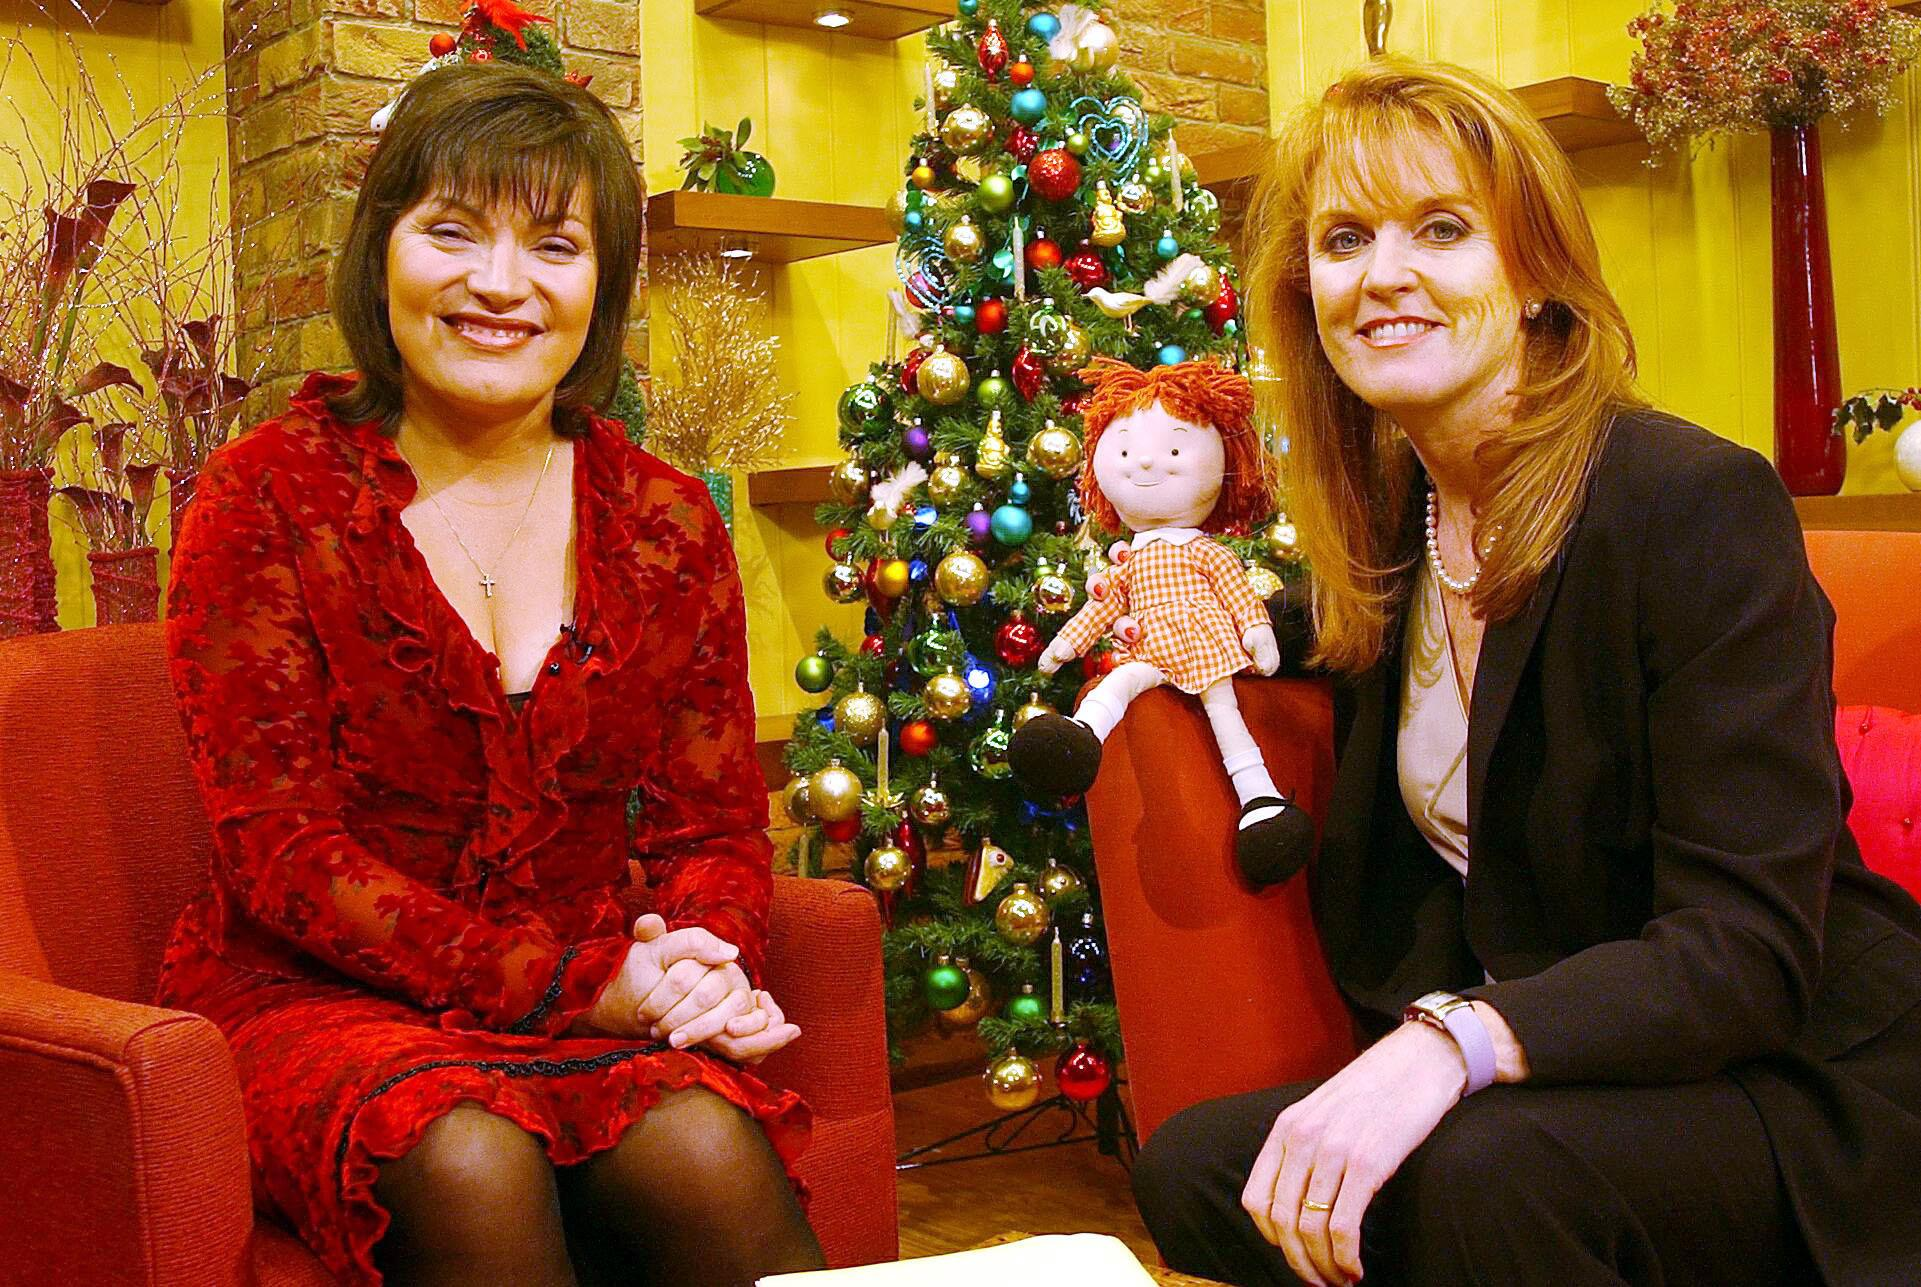 Sarah Ferguson (R) took part in Lorraine Kelly's (L) early morning breakfast show on GMTV, Wednesday 12 December 2001. She spoke about her charity 'Children in Crisis' and its work in Afghanistan.